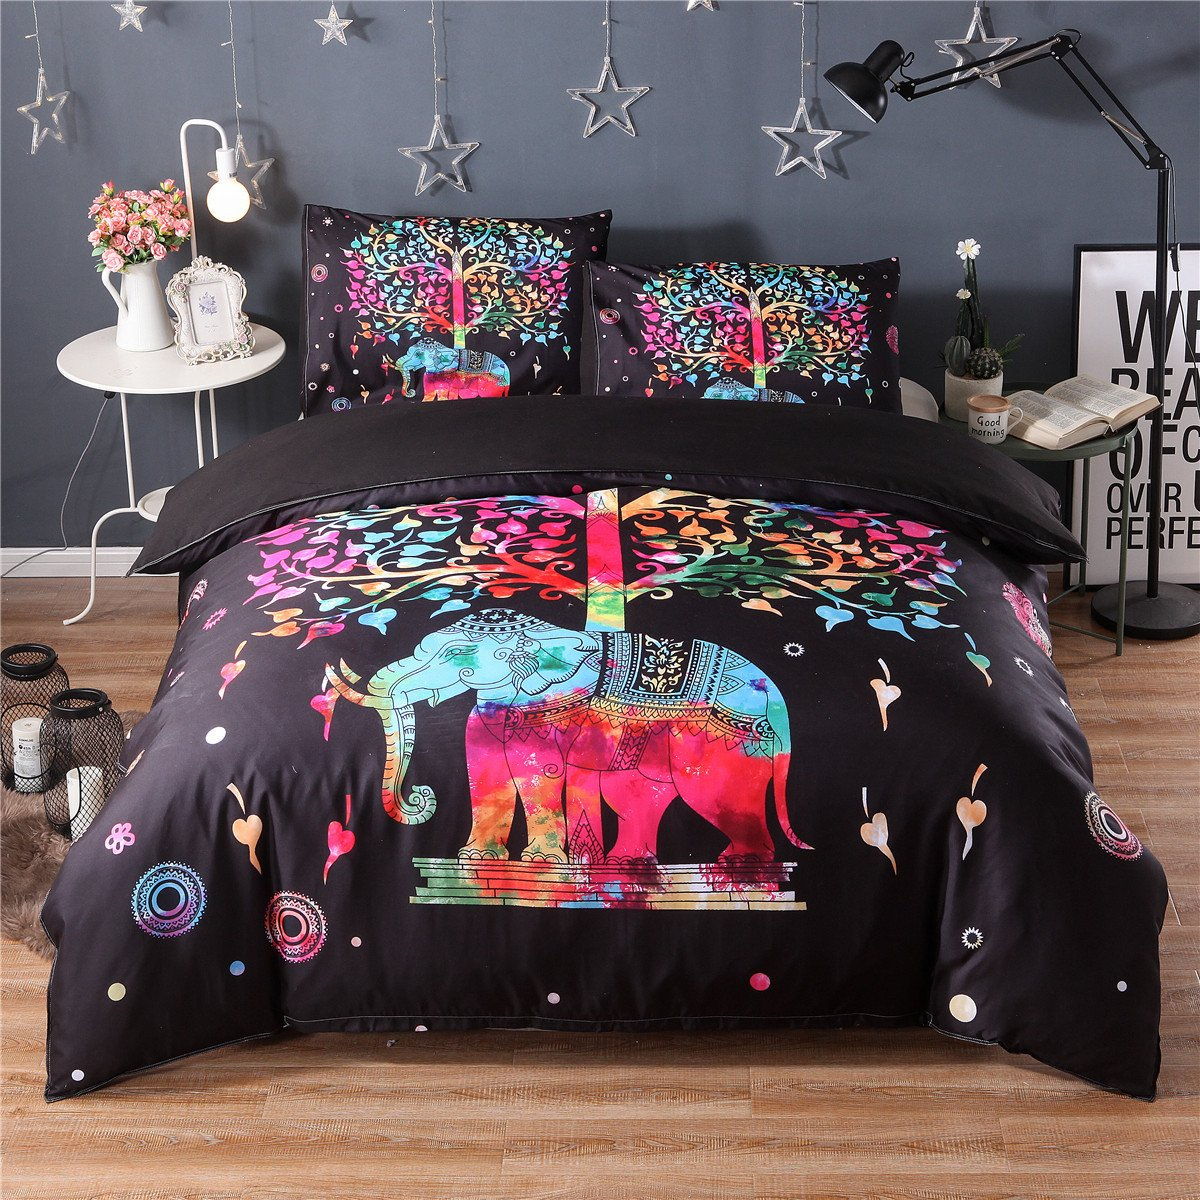 Hotel Luxury 3pc Duvet Cover Set-1500 Thread Count Egyptian Quality Ultra Silky Soft Premium Bedding Collection-Queen Size 3D Red Tree Elephant Comforter Insert Bedding Set